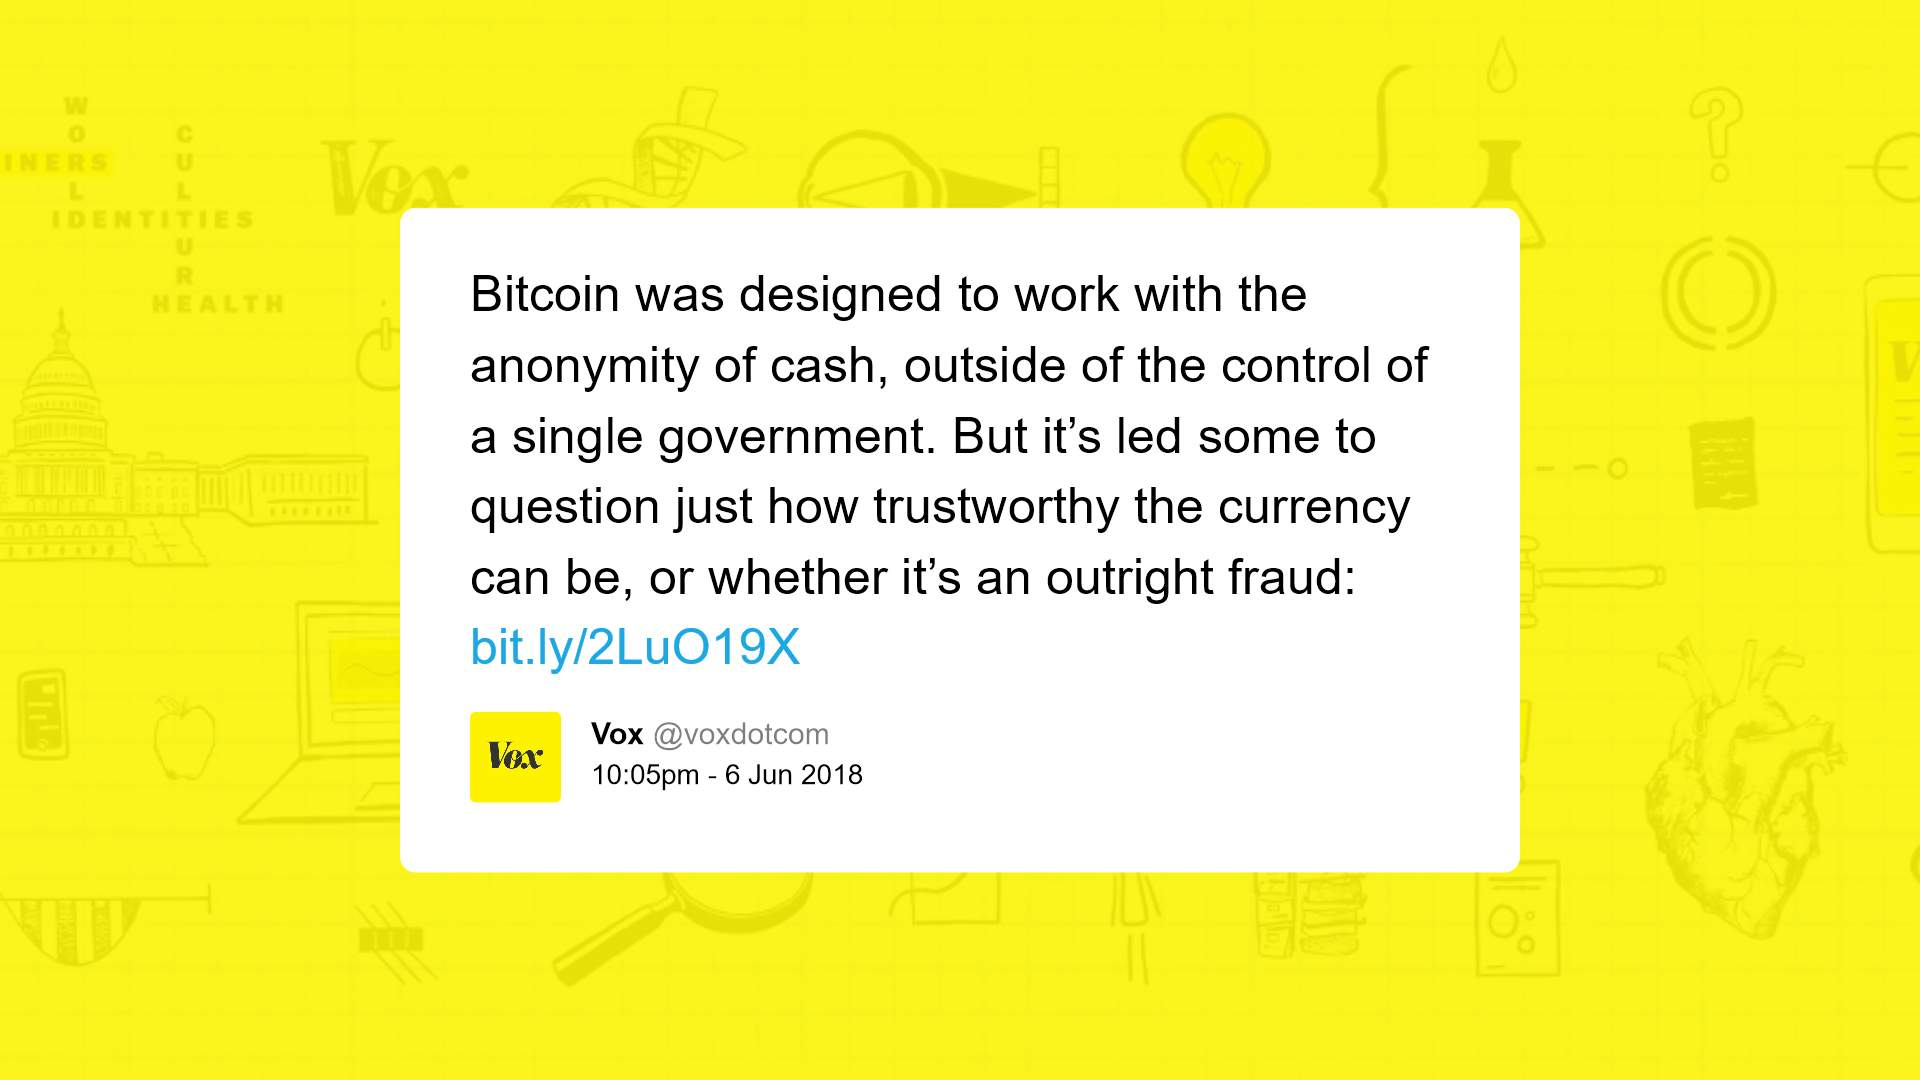 crypto is a scam according to Vox